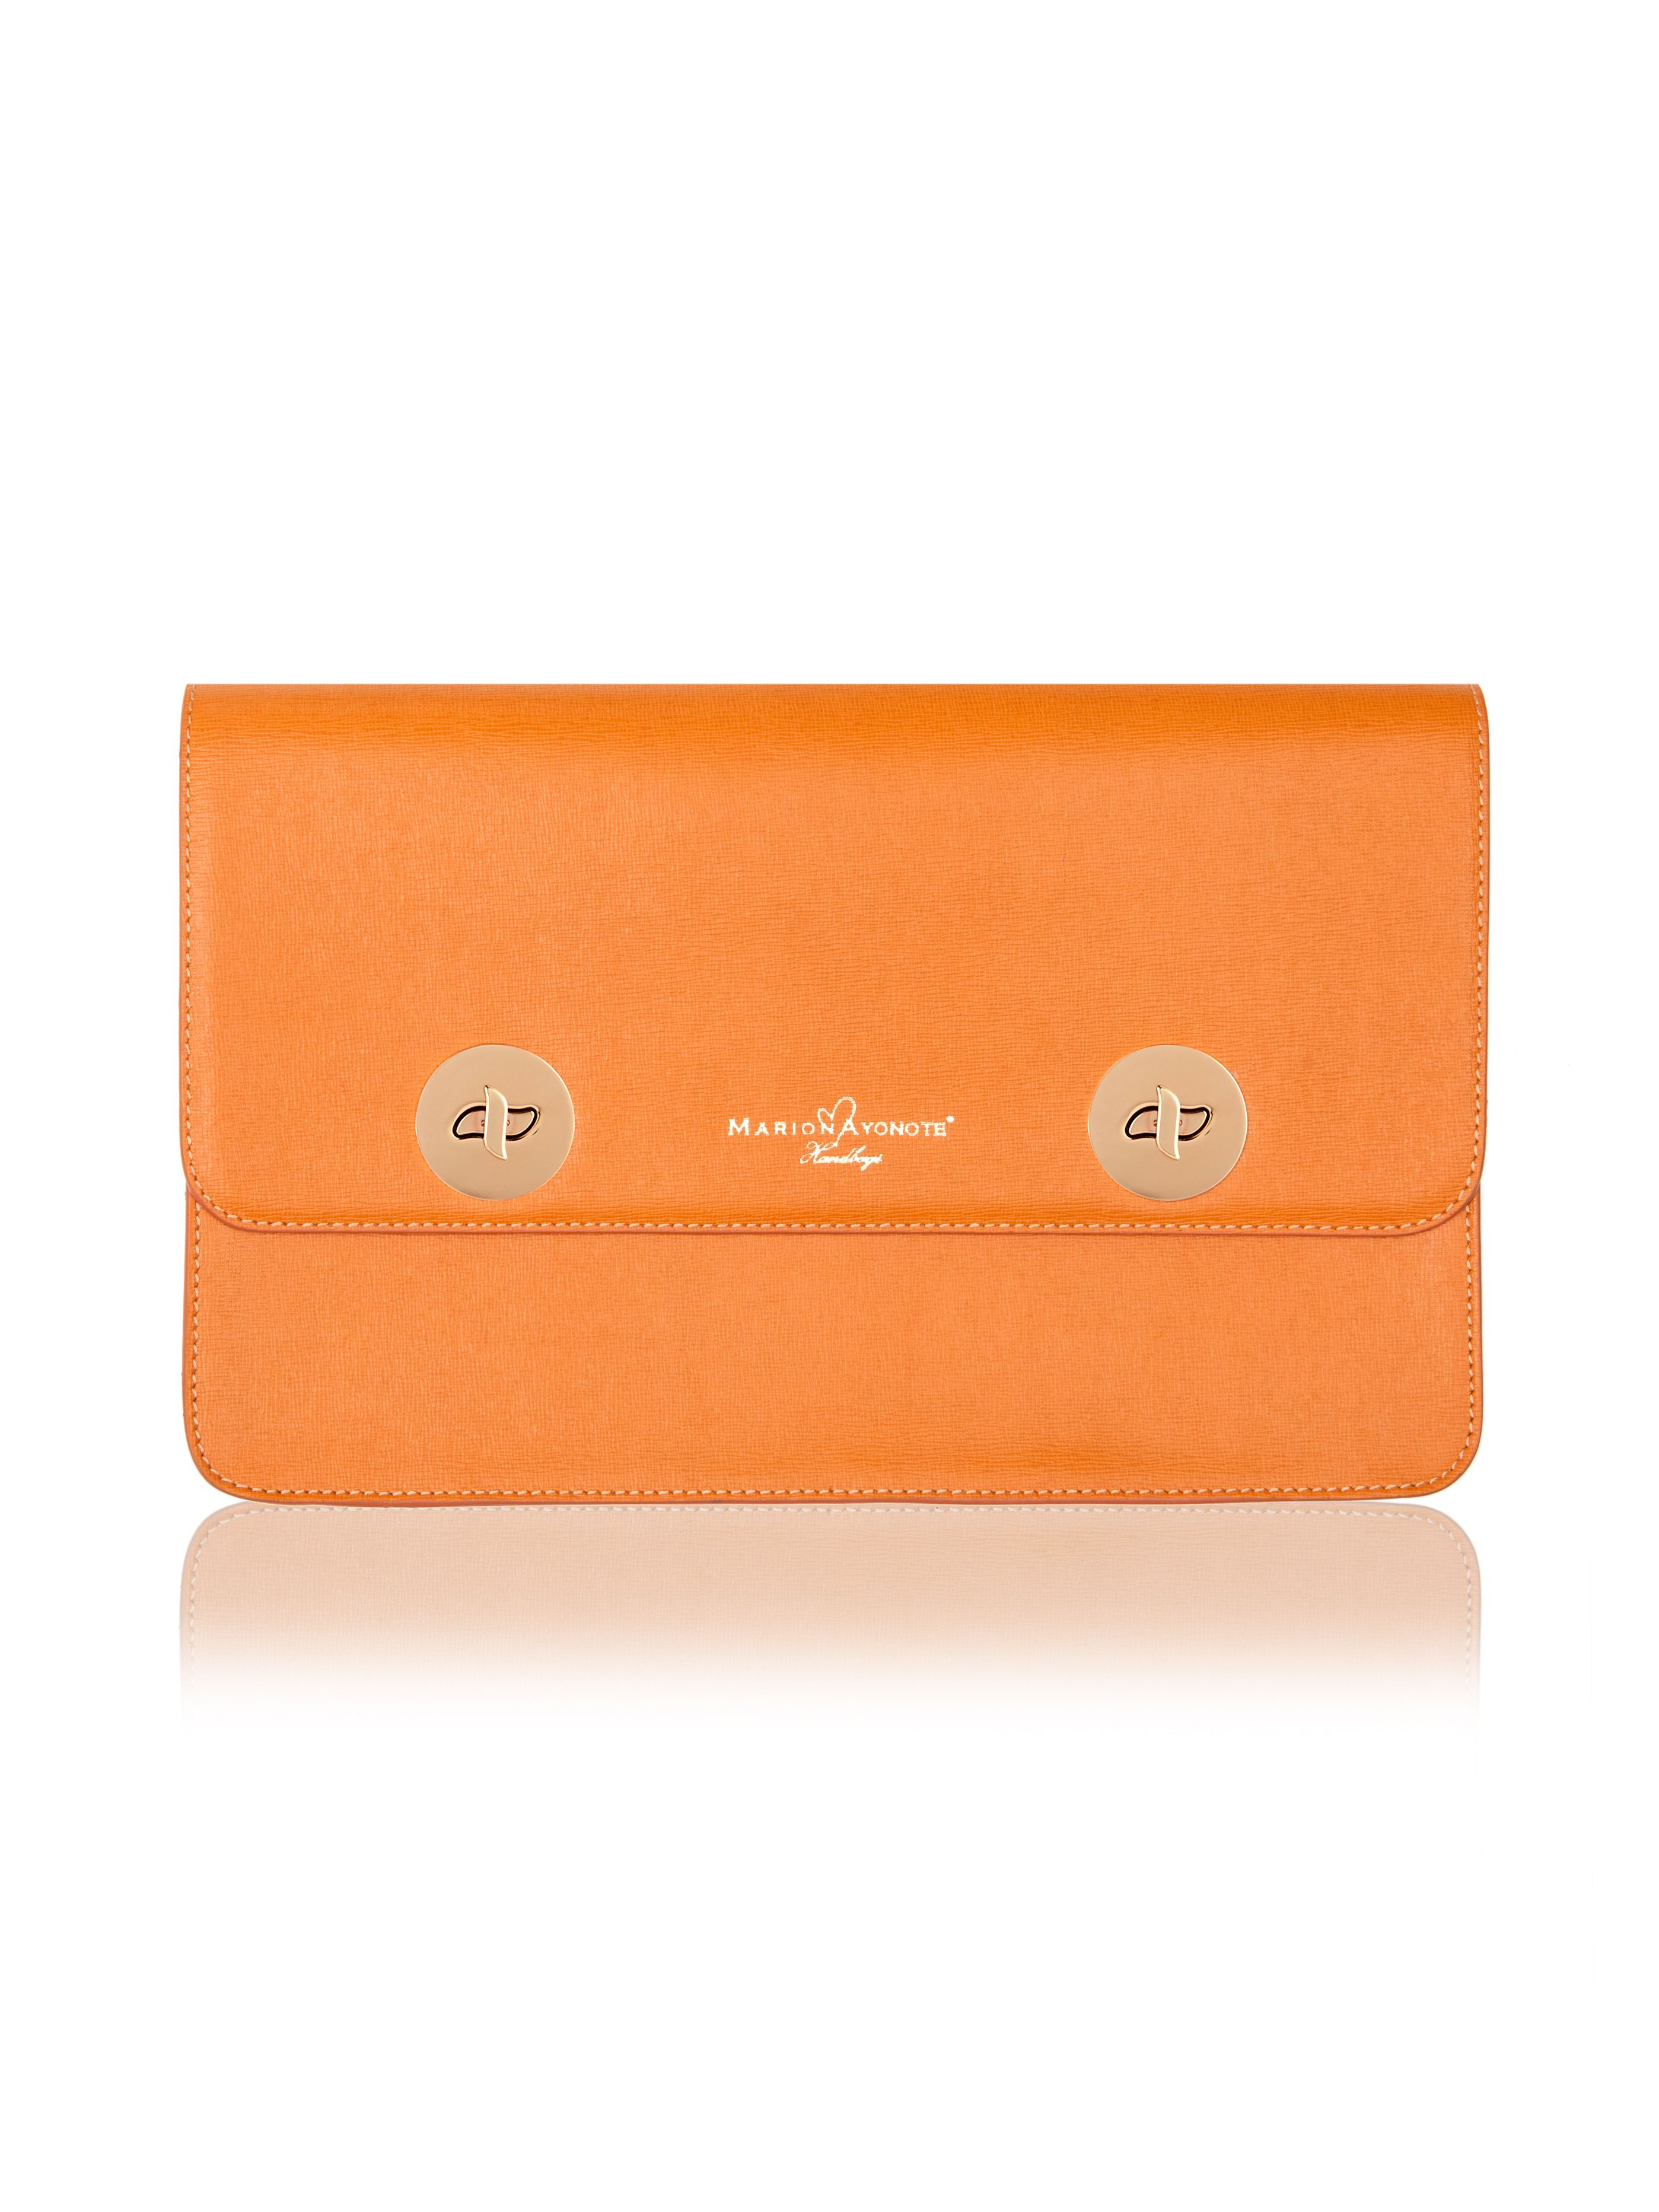 Marion Ayonote Marion Ayonote Issoria disc clutch, Yellow